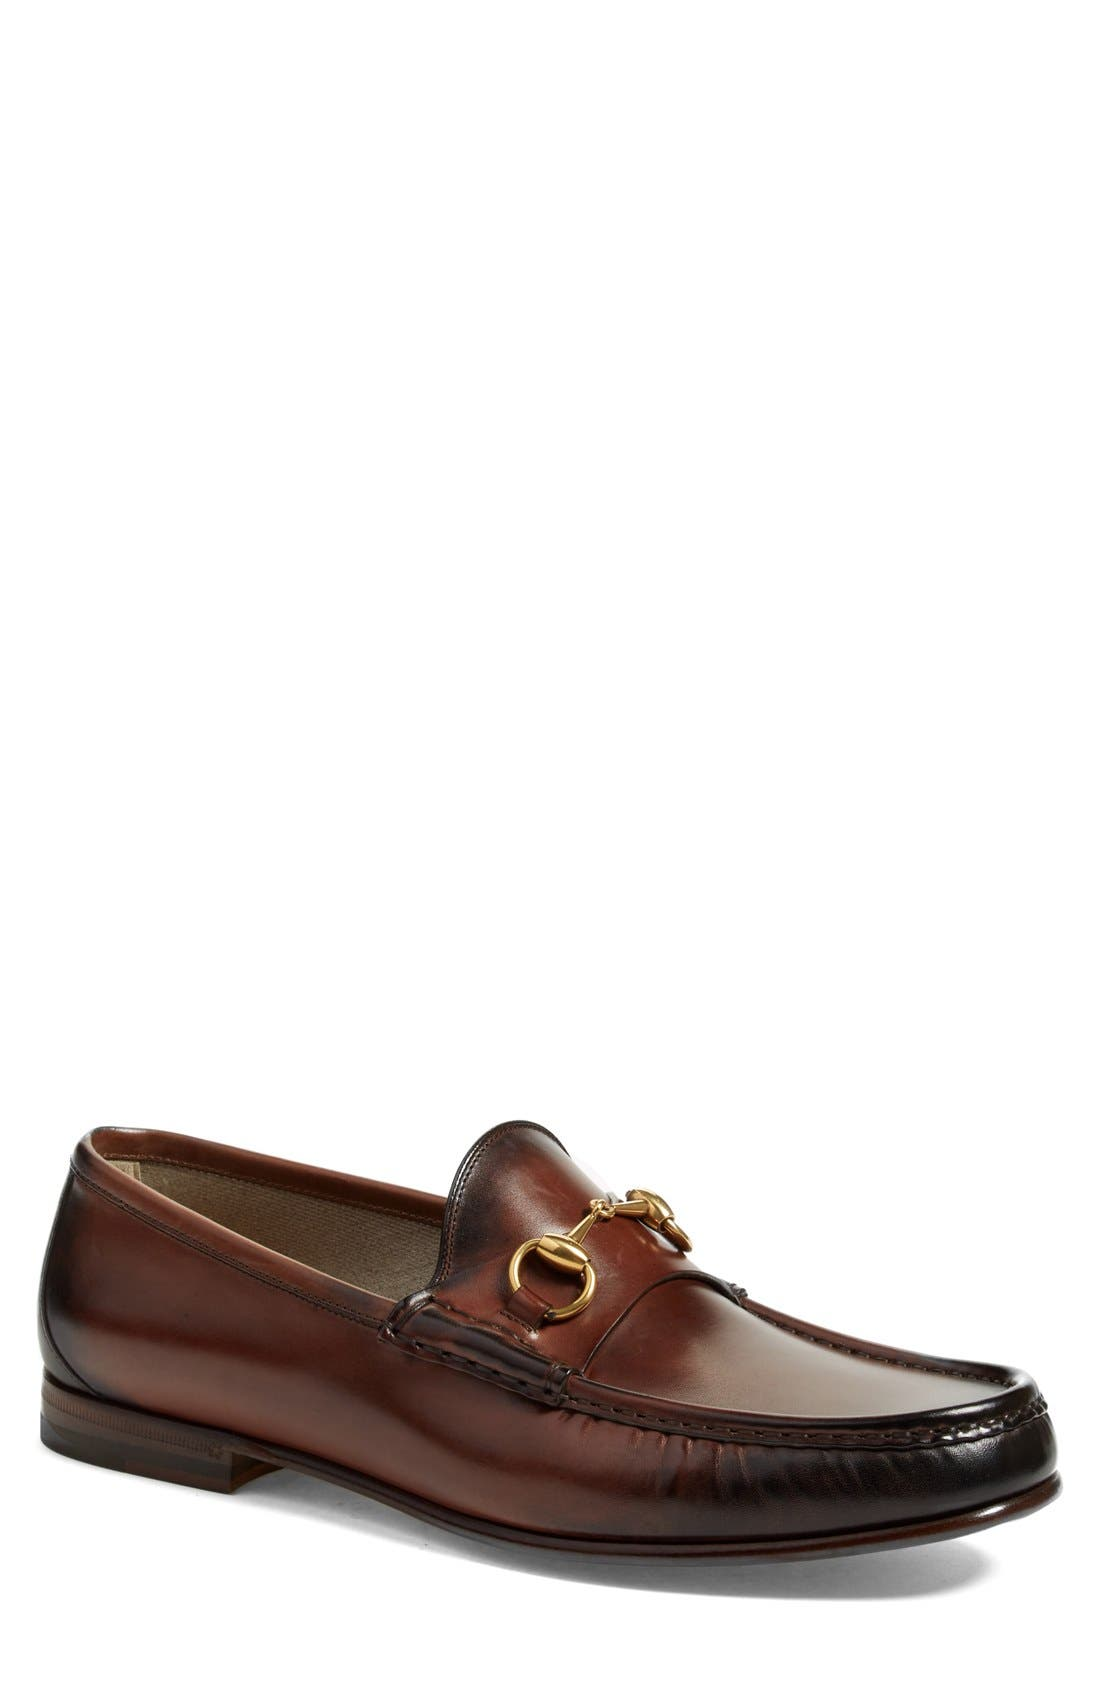 Alternate Image 1 Selected - Gucci 'Roos' Bit Loafer (Men)